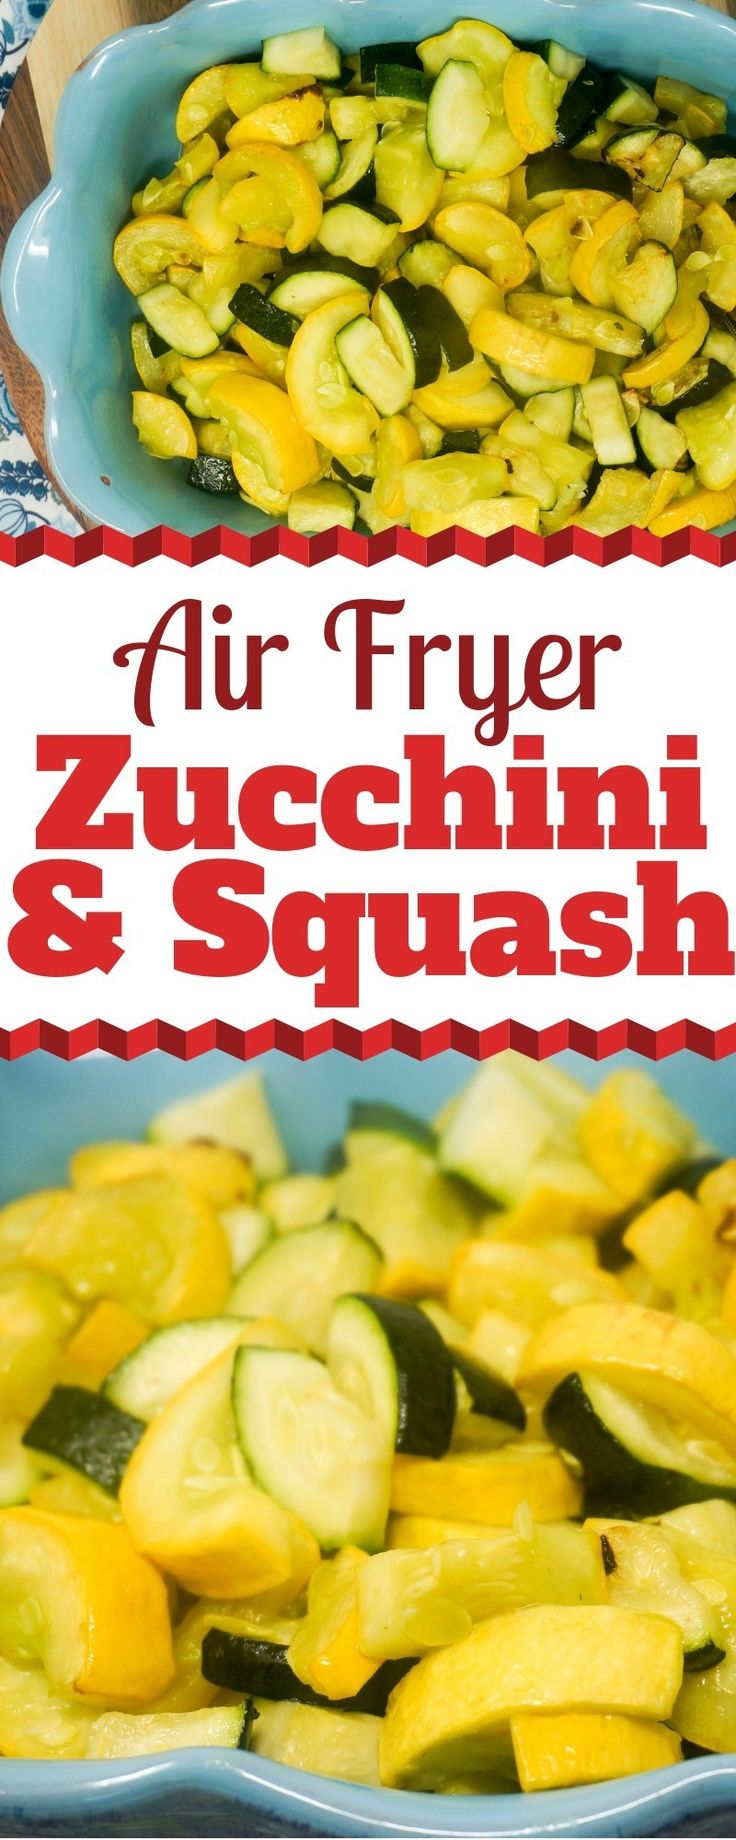 Air Fryer Zucchini and Yellow Squash Recipe Vegetable